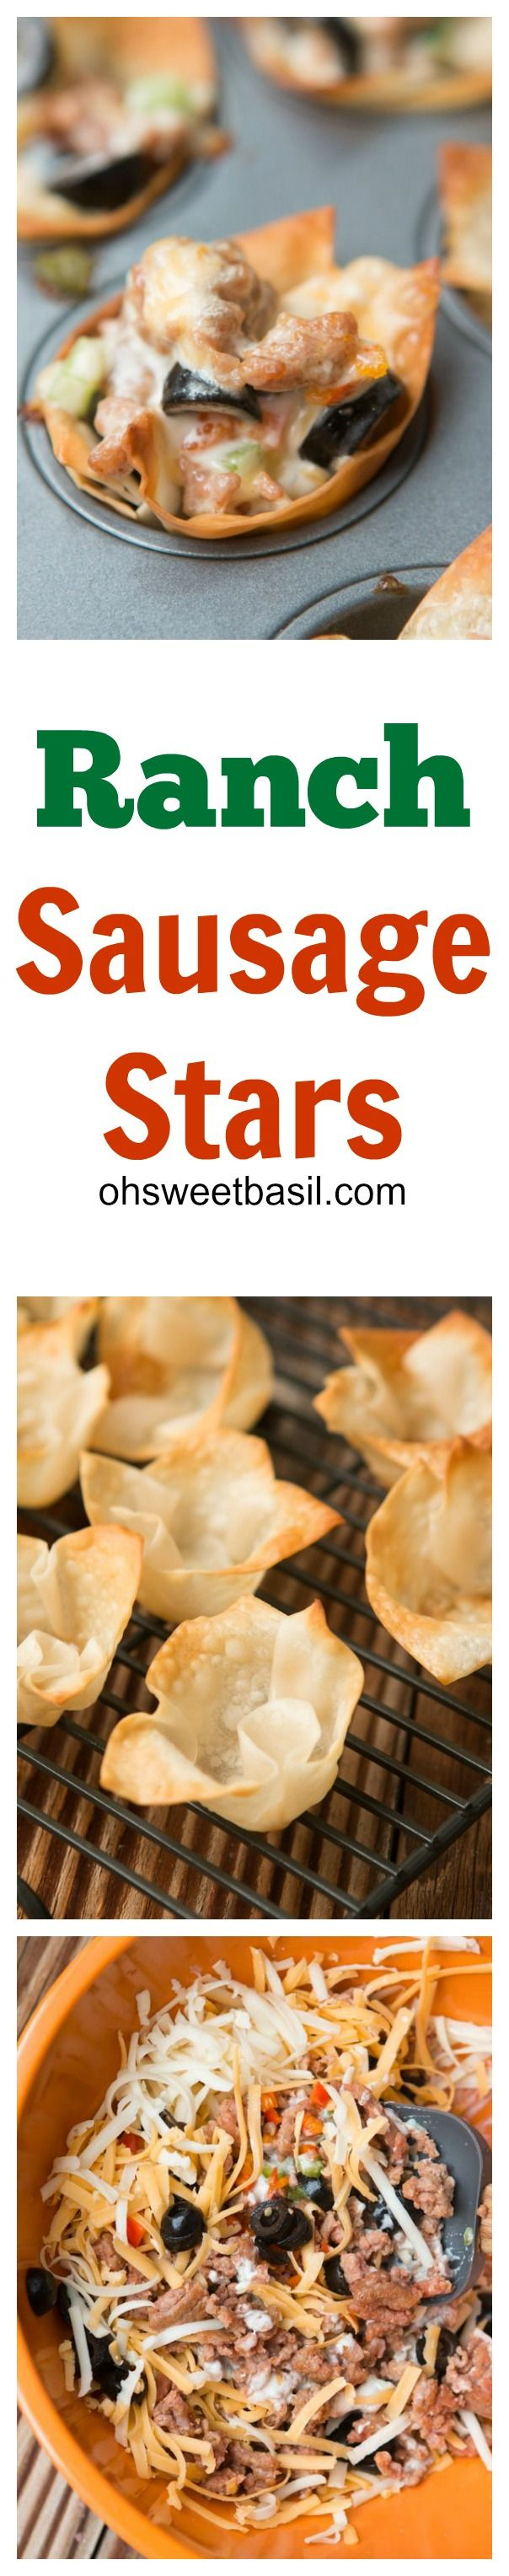 One of the best appetizers for the superbowl or any other get together, ranch sausage stars! ohsweetbasil.com